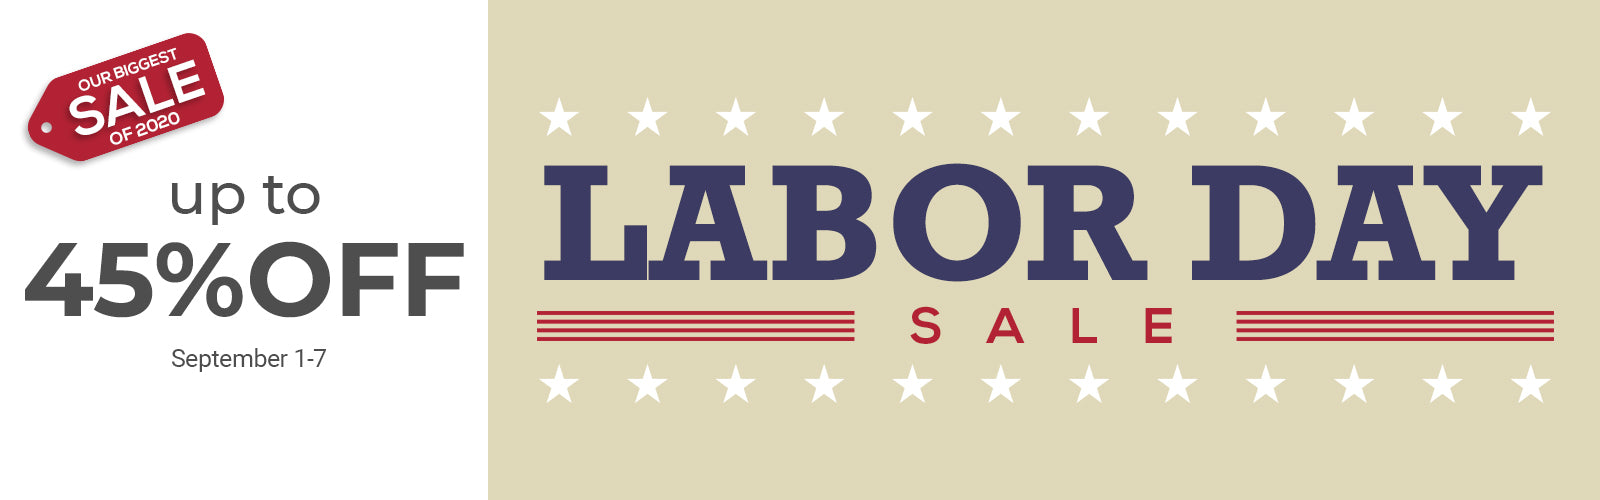 Labor Day Sale: Up to 45% Off on various products!